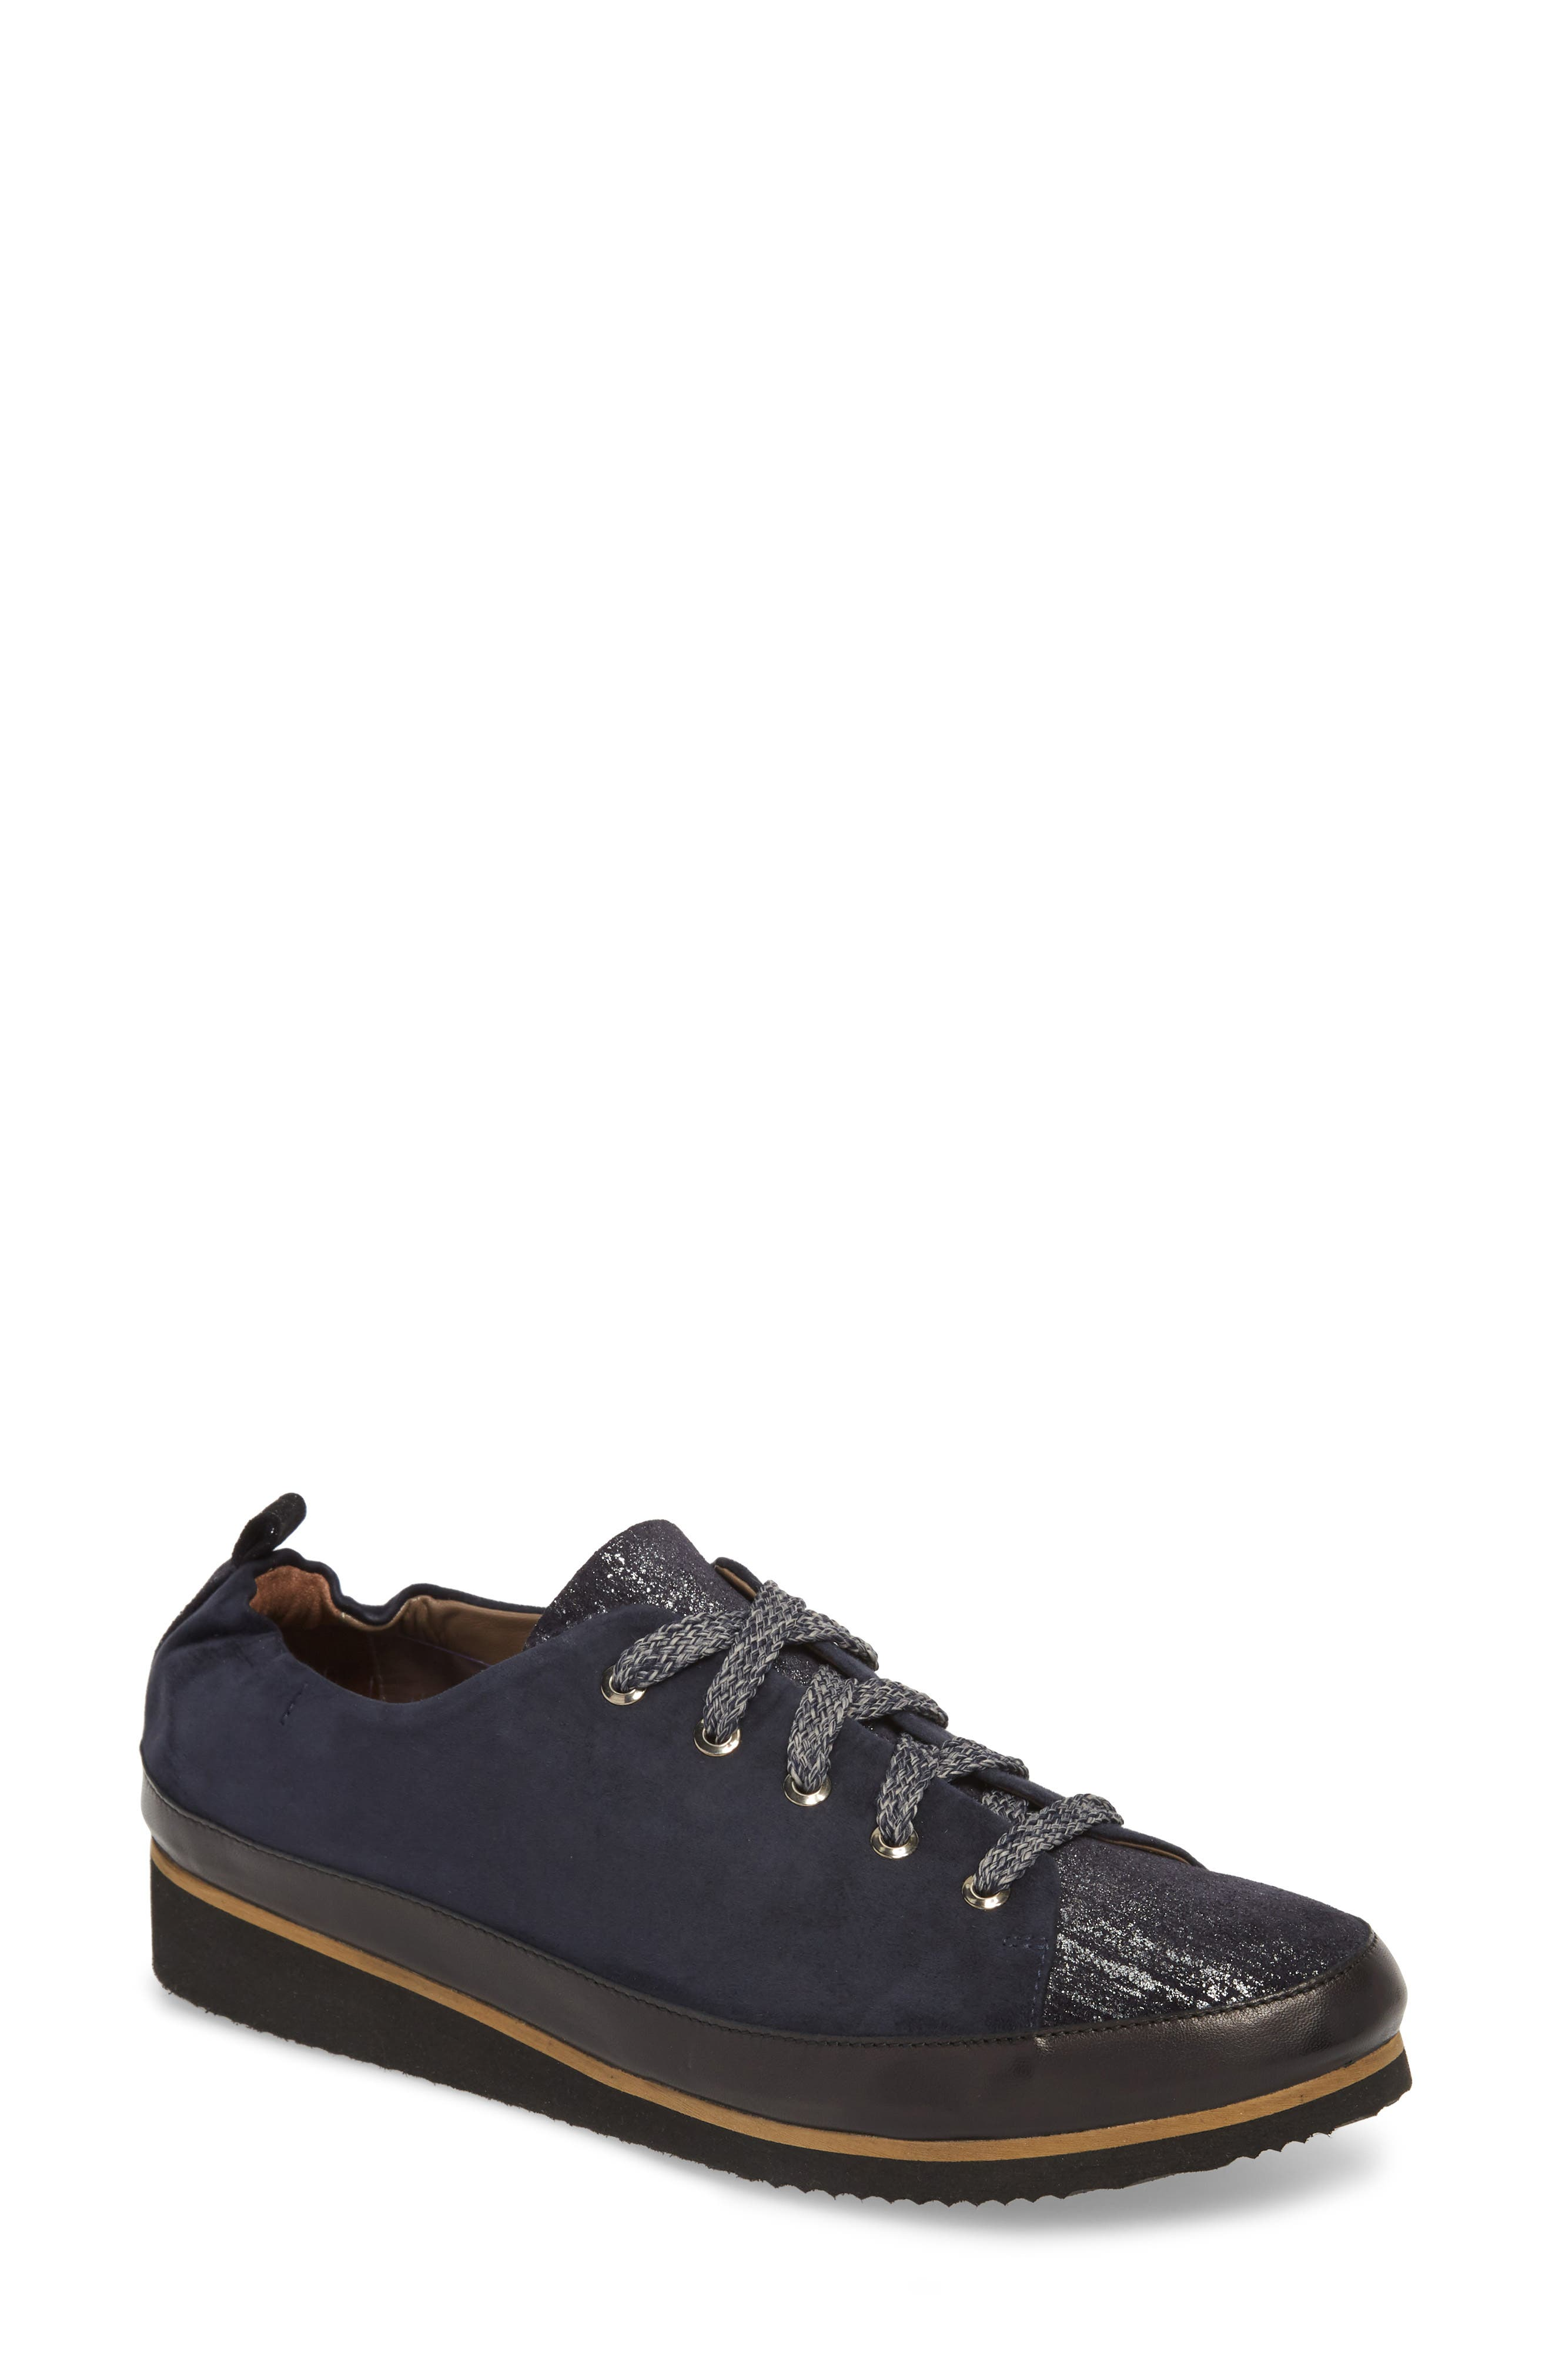 Nettie Lace-Up Wedge Sneaker,                         Main,                         color, French Navy Leather